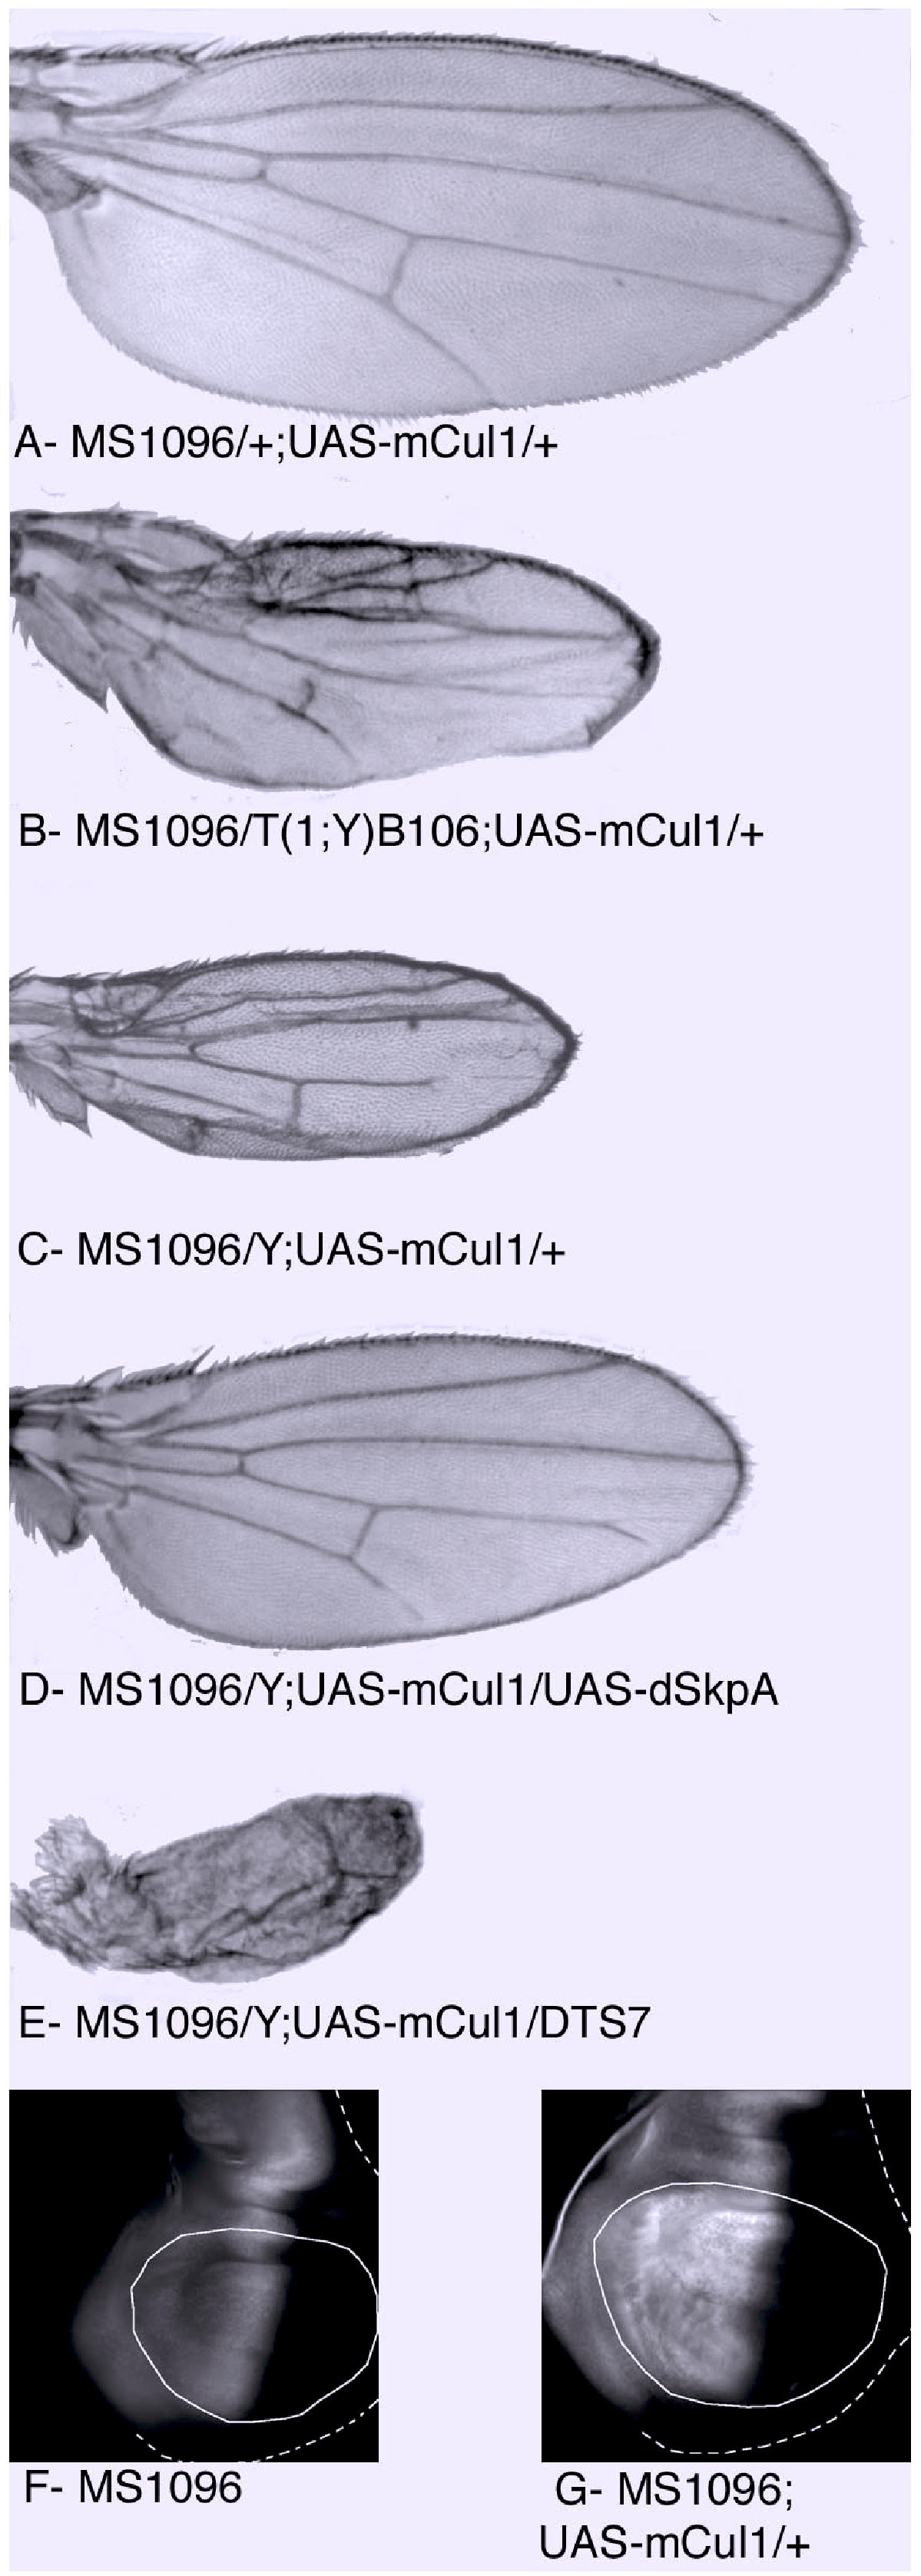 https://static-content.springer.com/image/art%3A10.1186%2F1471-2156-4-9/MediaObjects/12863_2003_Article_58_Fig2_HTML.jpg